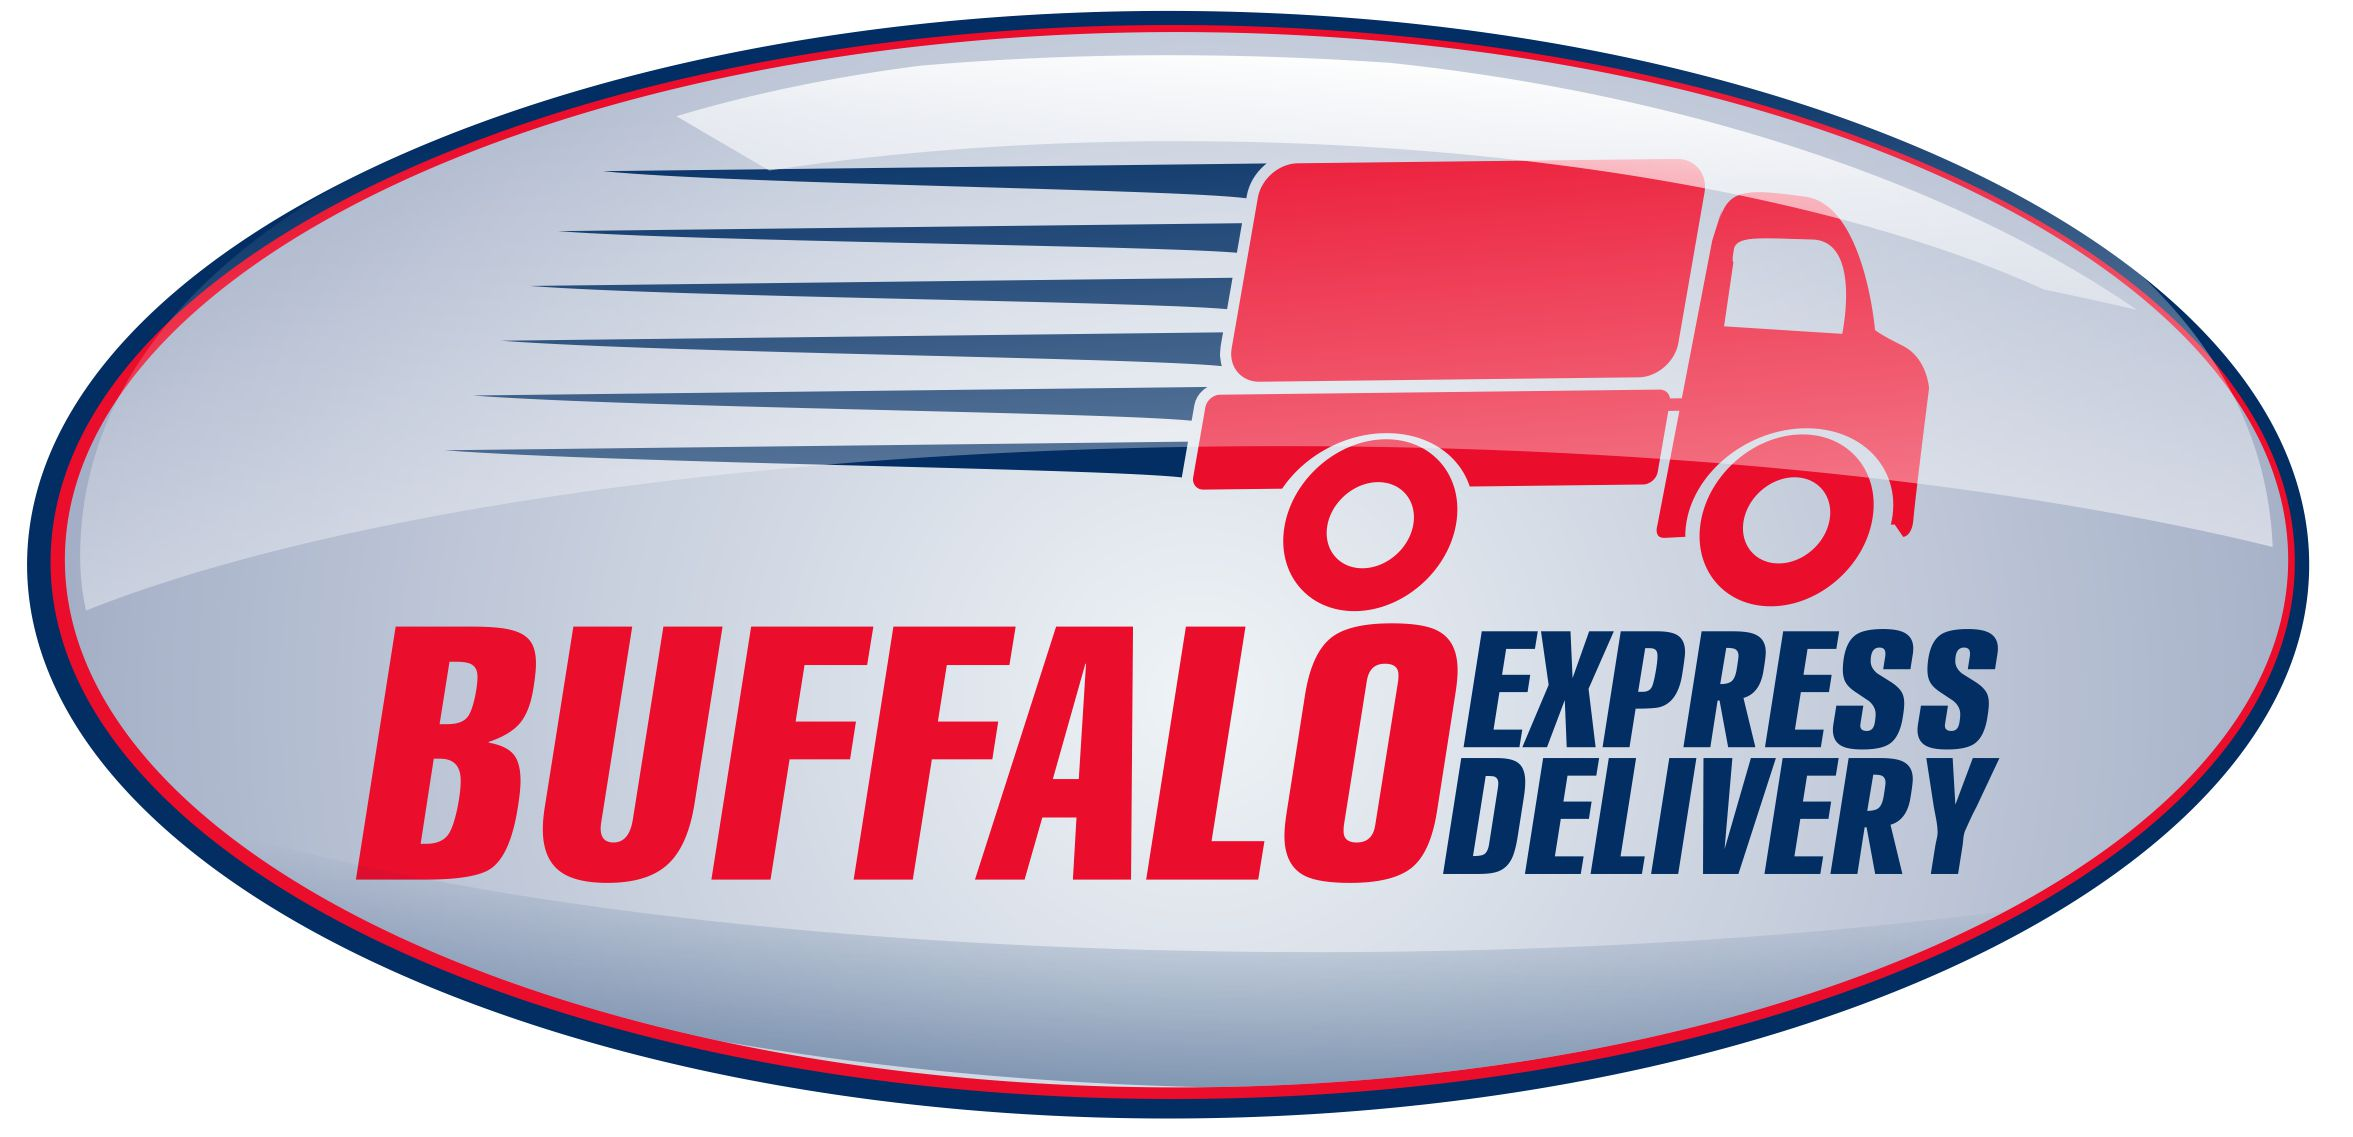 Express Delivery Company Logo